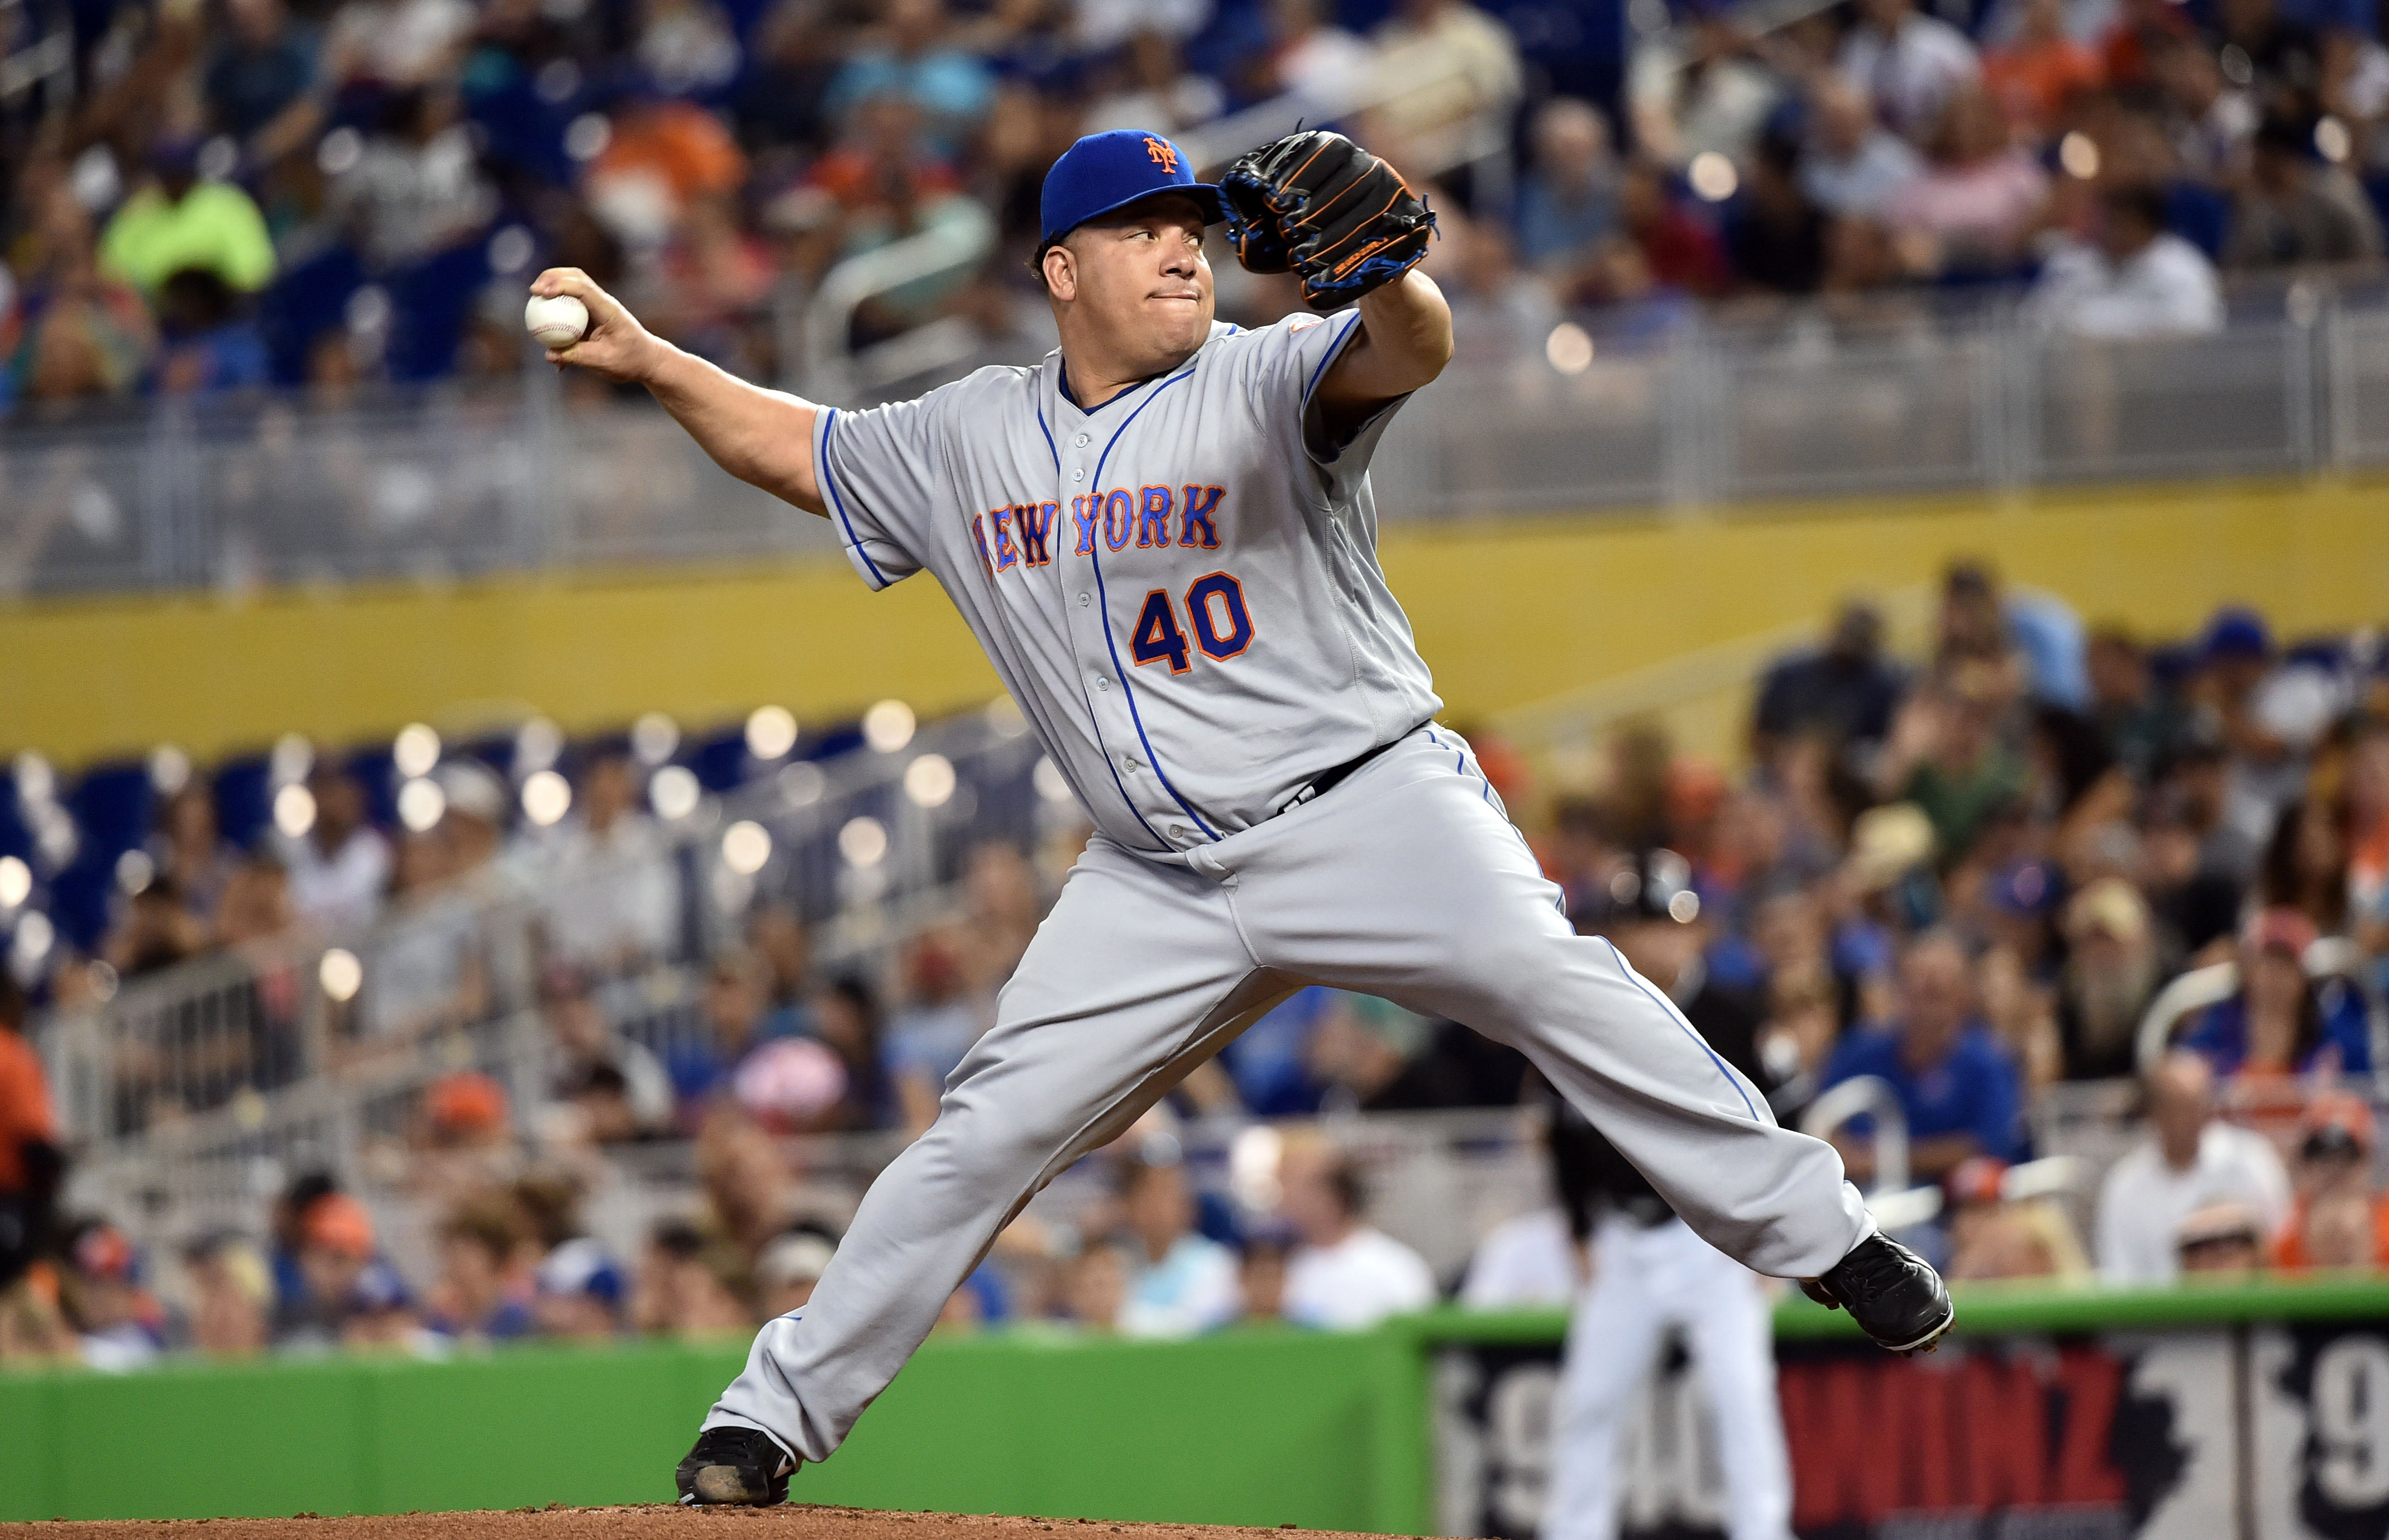 Jun 4, 2016; Miami, FL, USA; New York Mets starting pitcher Bartolo Colon (40) delivers a pitch against the Miami Marlins during the first inning at Marlins Park.